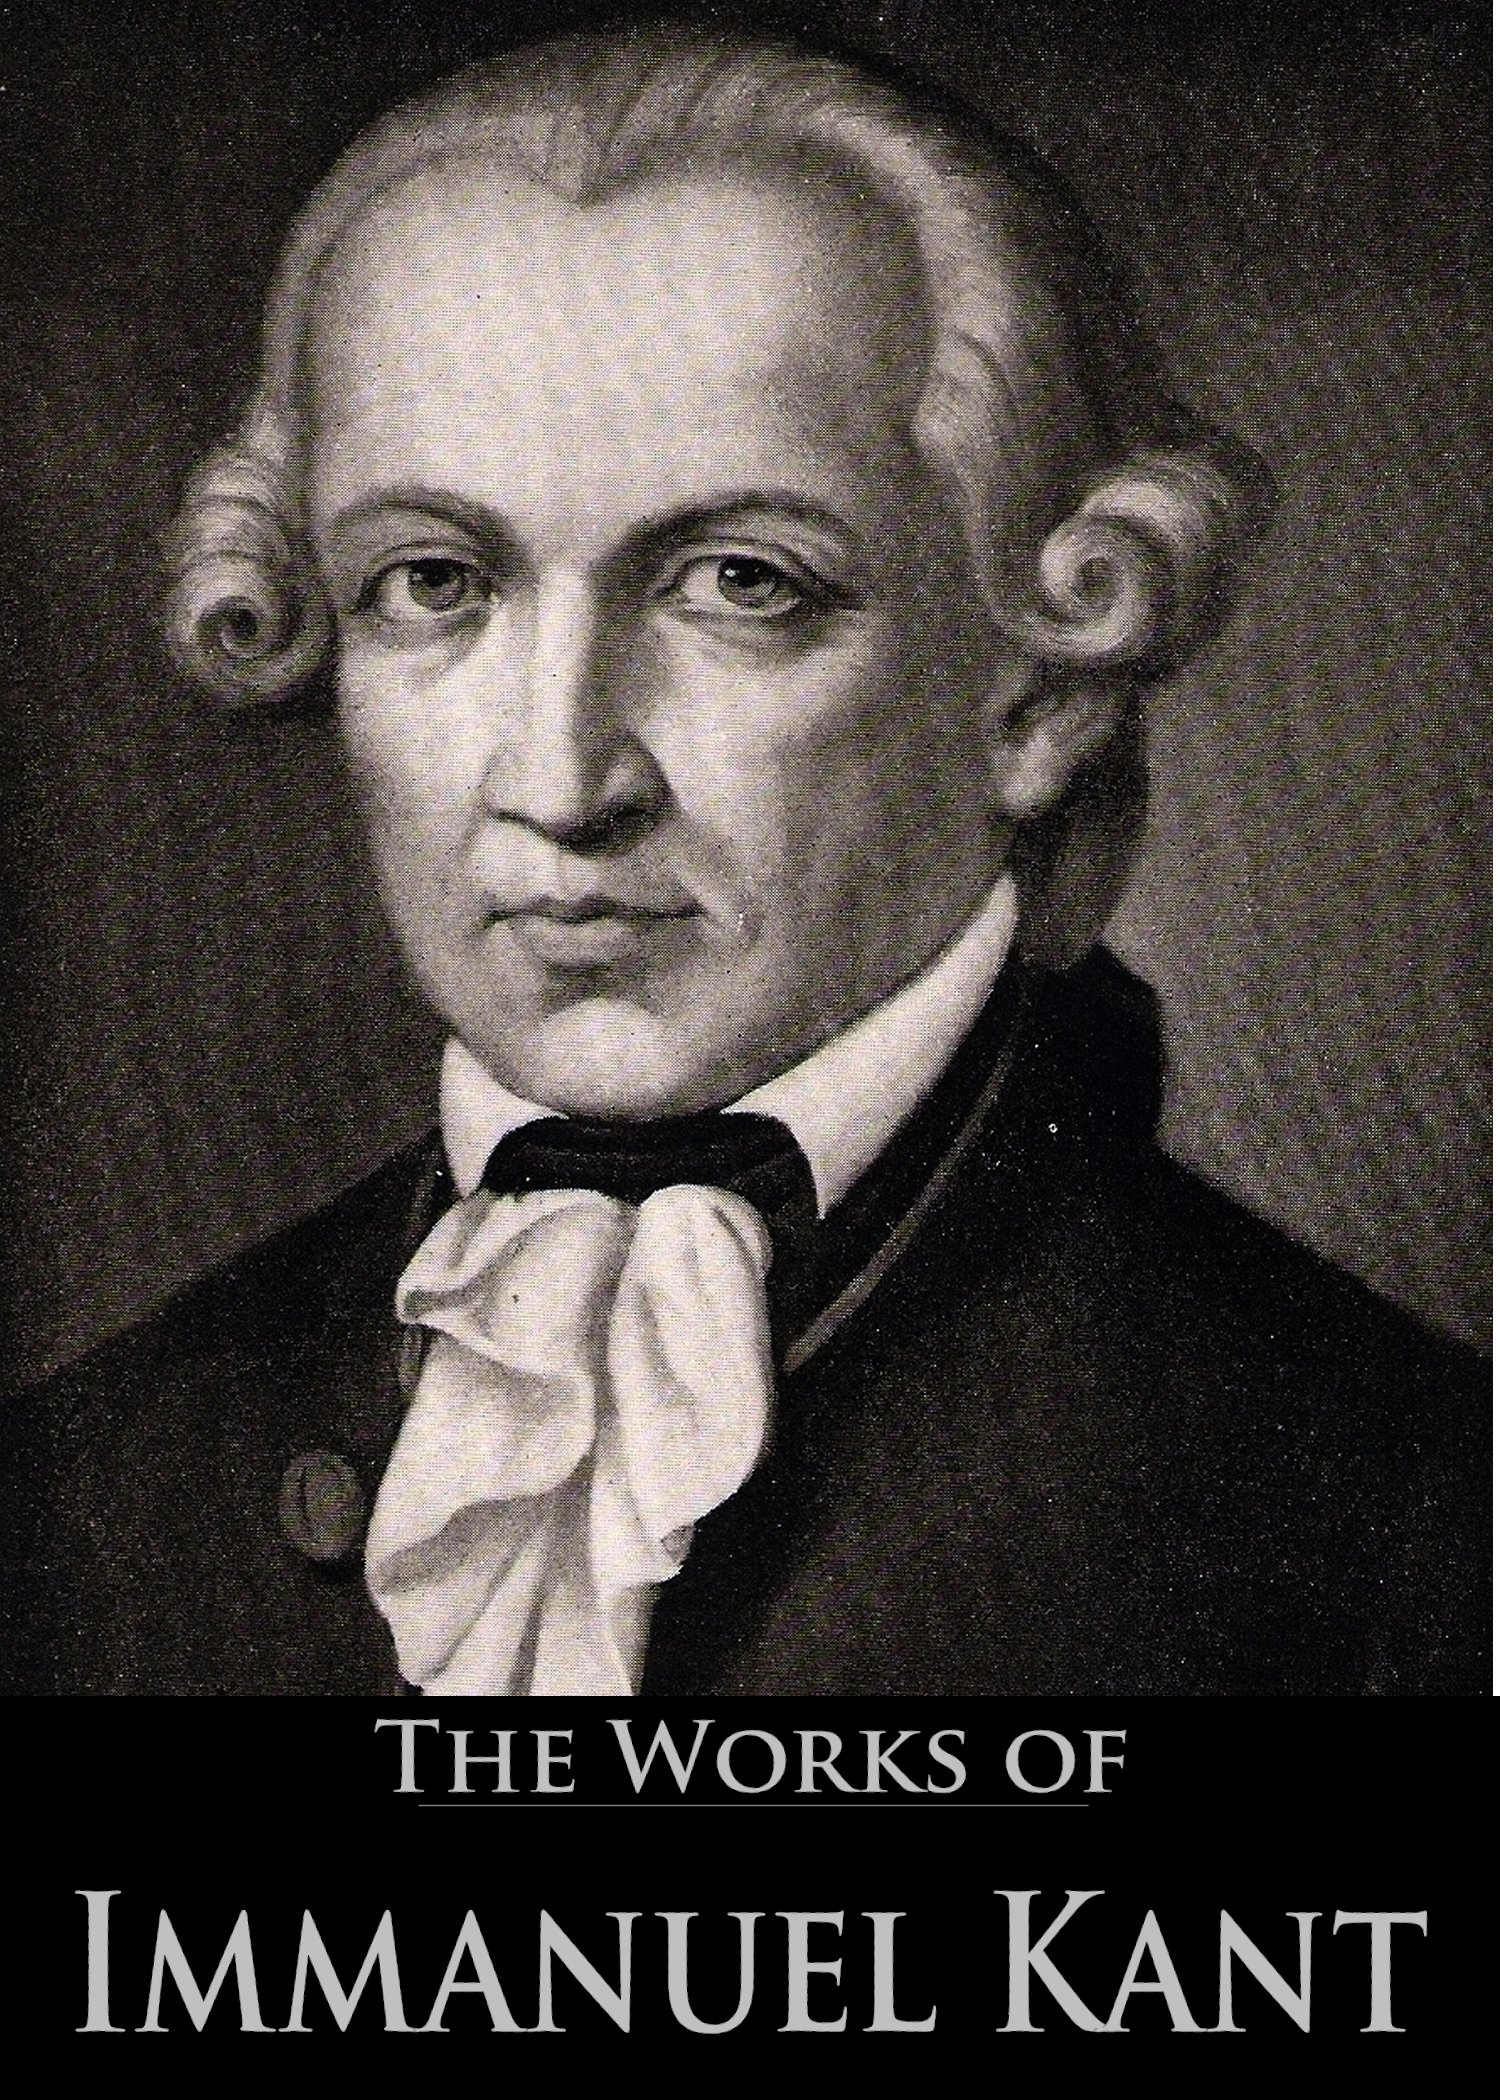 kant and rousseau essay Rousseau and locke - papers on jean jacques rousseau and john locke rousseau and locke - papers on the comparable views of locke and kant.